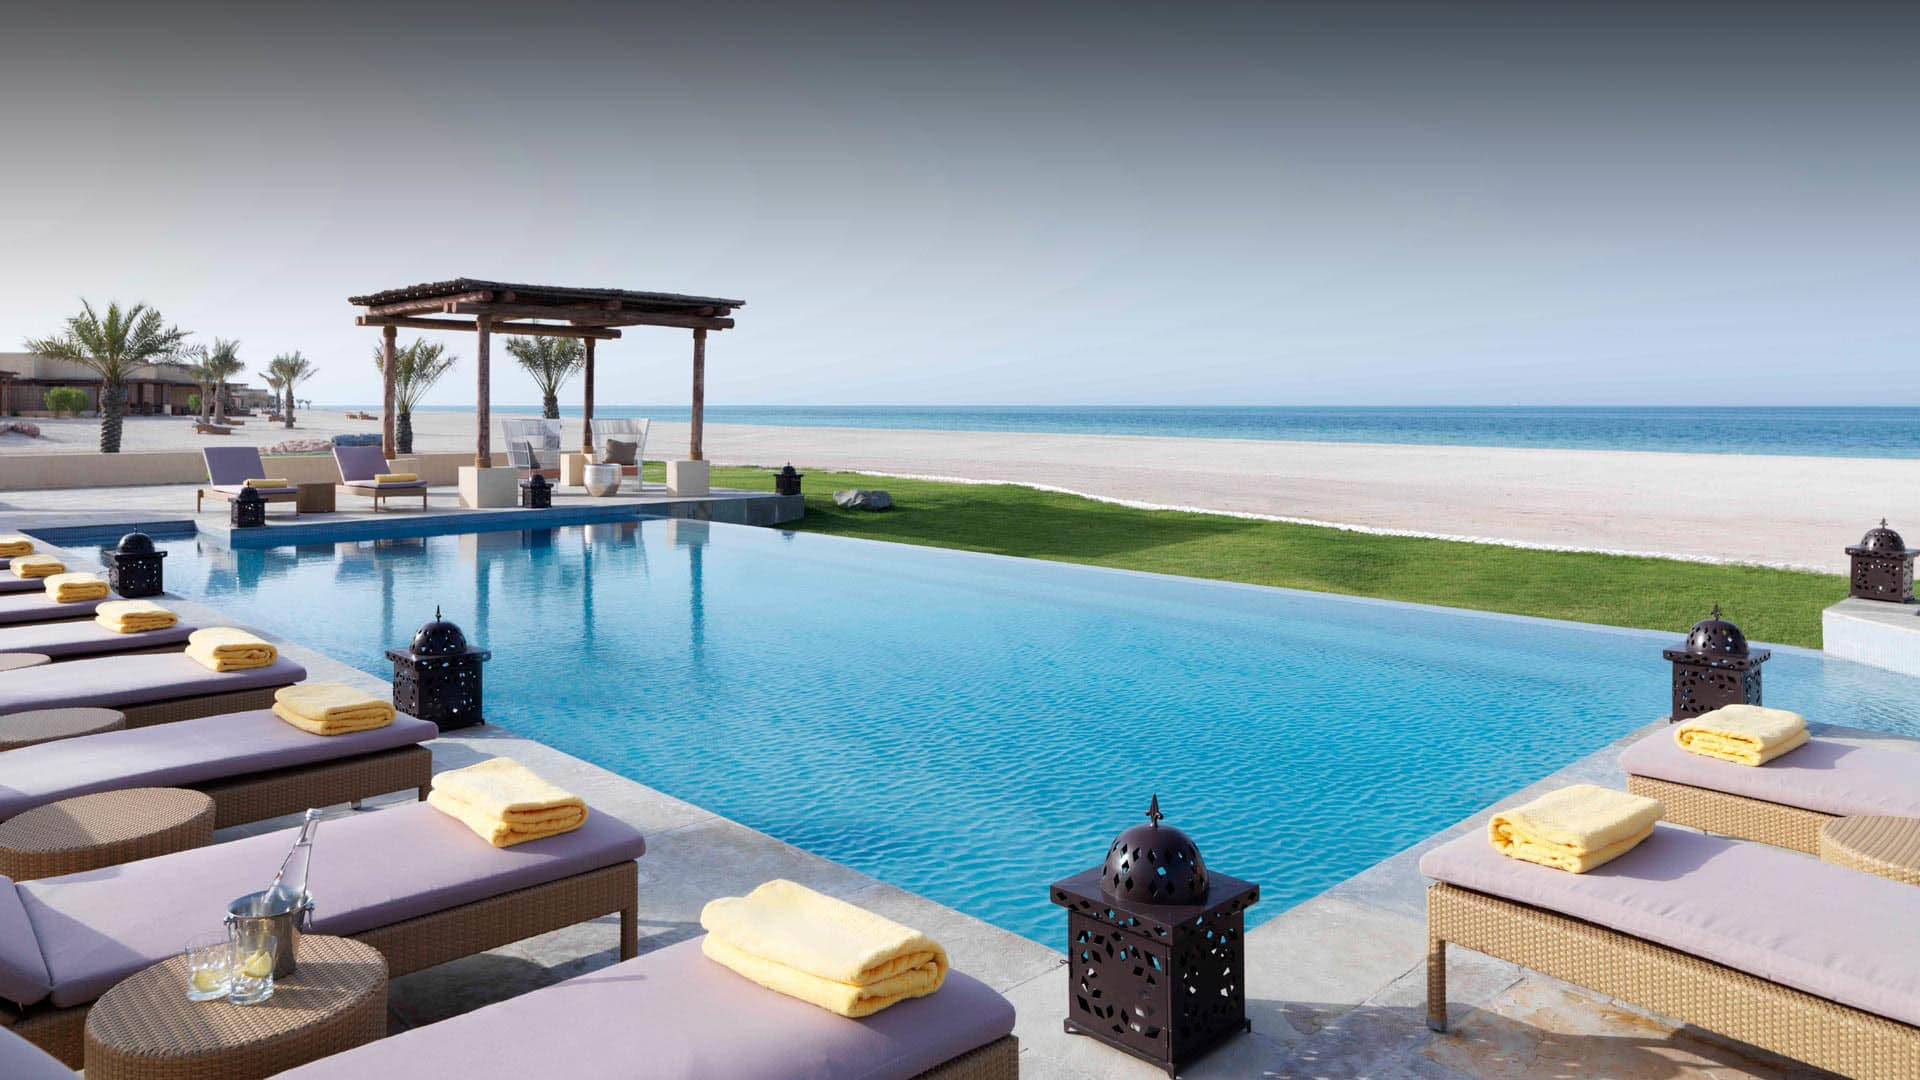 https://assets.anantara.com/image/upload/q_auto,f_auto/media/minor/anantara/images/anantara-sir-bani-yas-island-al-yamm-villa-resort/the-resort/desktop-banner/anantara_al_yamm_header_1920x1080.jpg